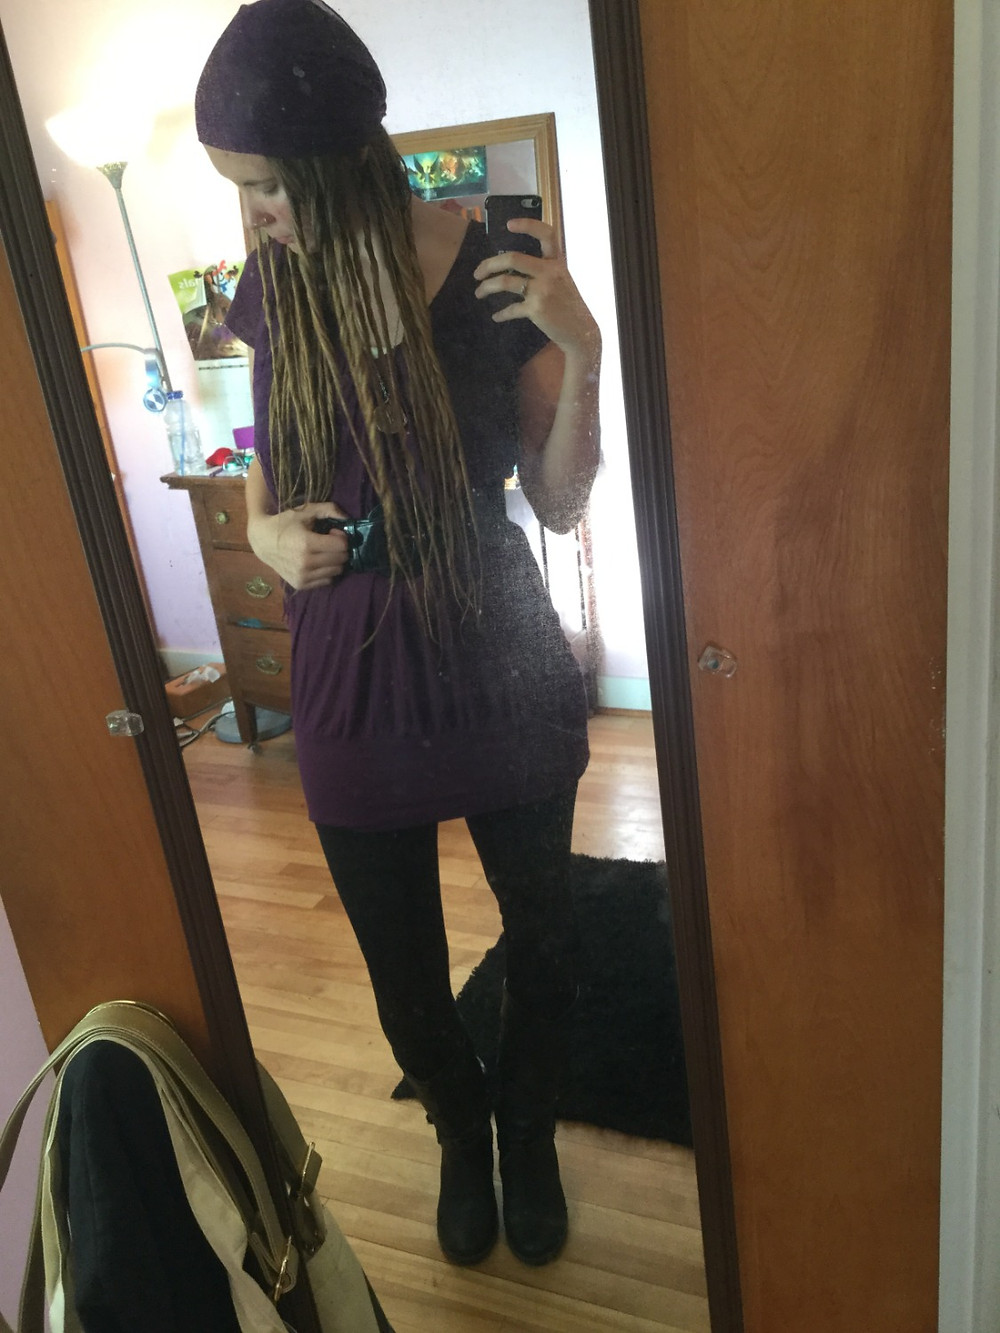 Since it's close to Halloween, it was a costume dance night, and I chose to go as a pirate *surprise, surprise :P*. The fake dreads stayed in all night and all the next day (yesterday) as well, and I could definitely get used to a hairstyle like that.